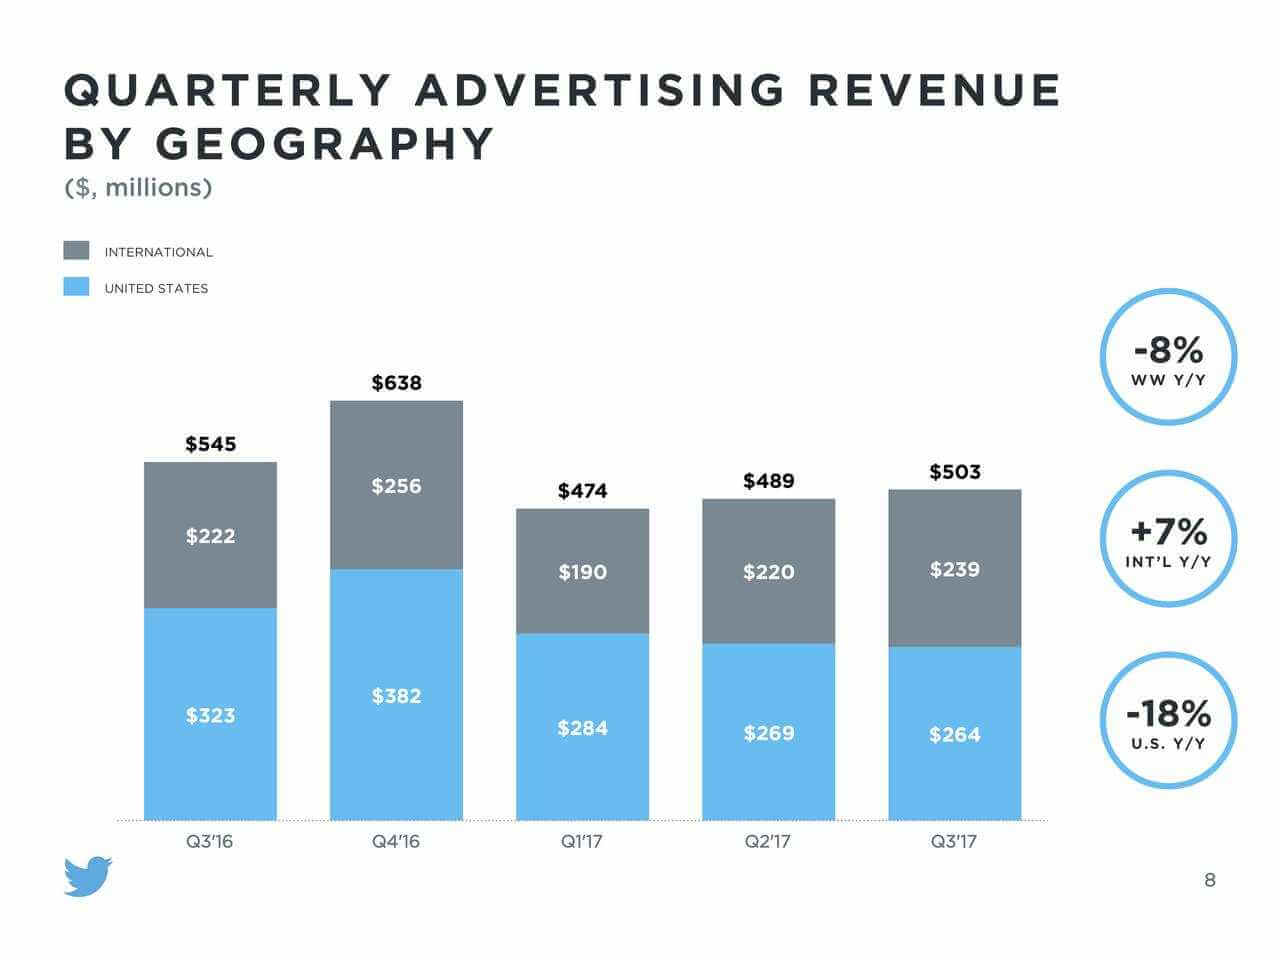 Twitter quarterly advertising revenue by geography